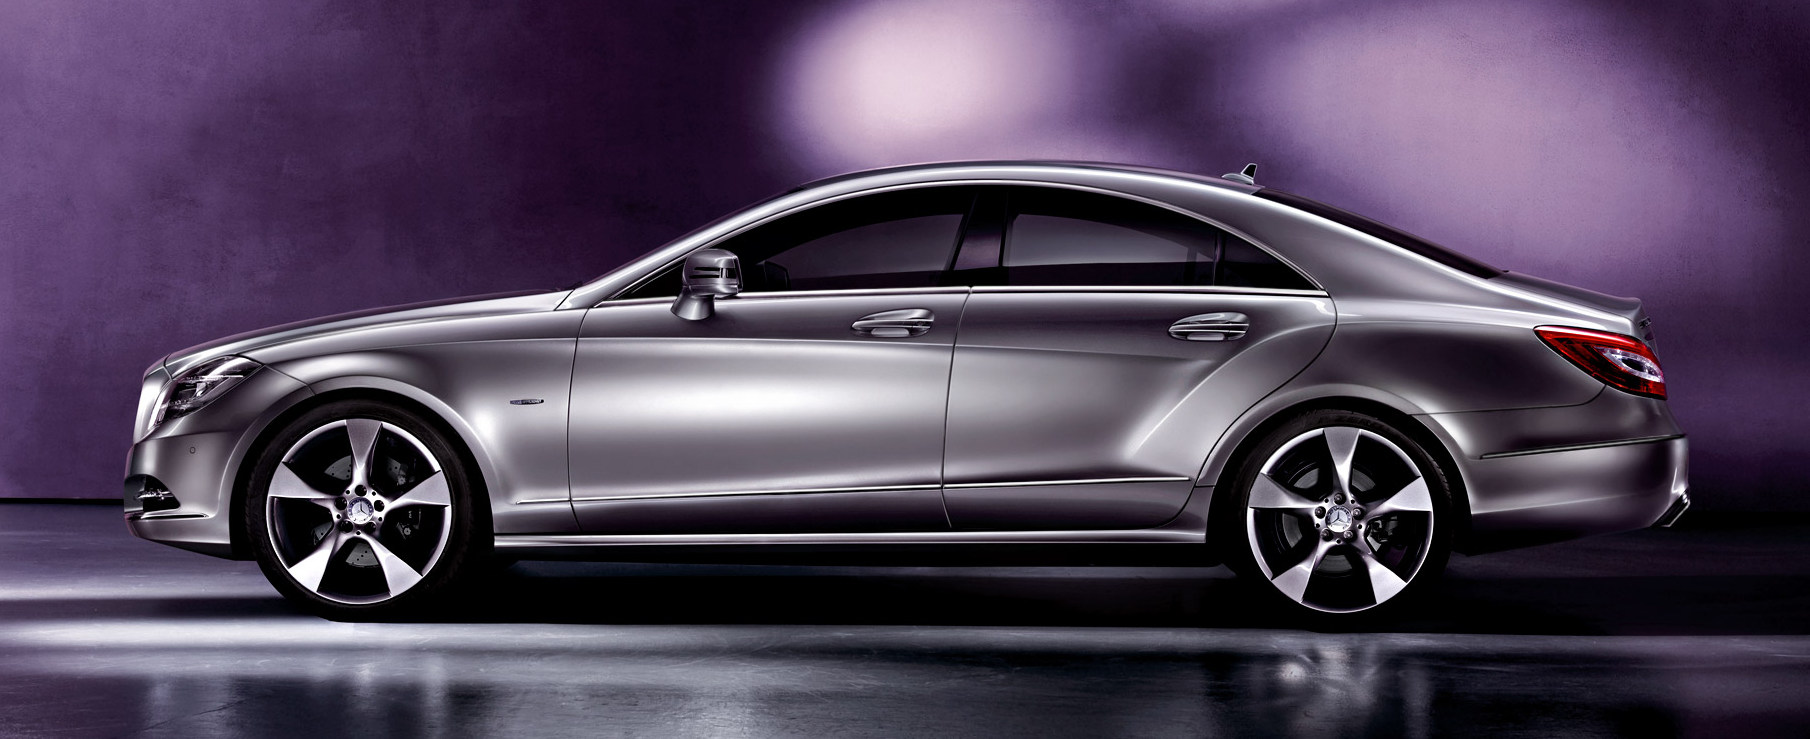 2014 Mercedes-Benz CLS 350 launched at Rs. 89.9 lakh